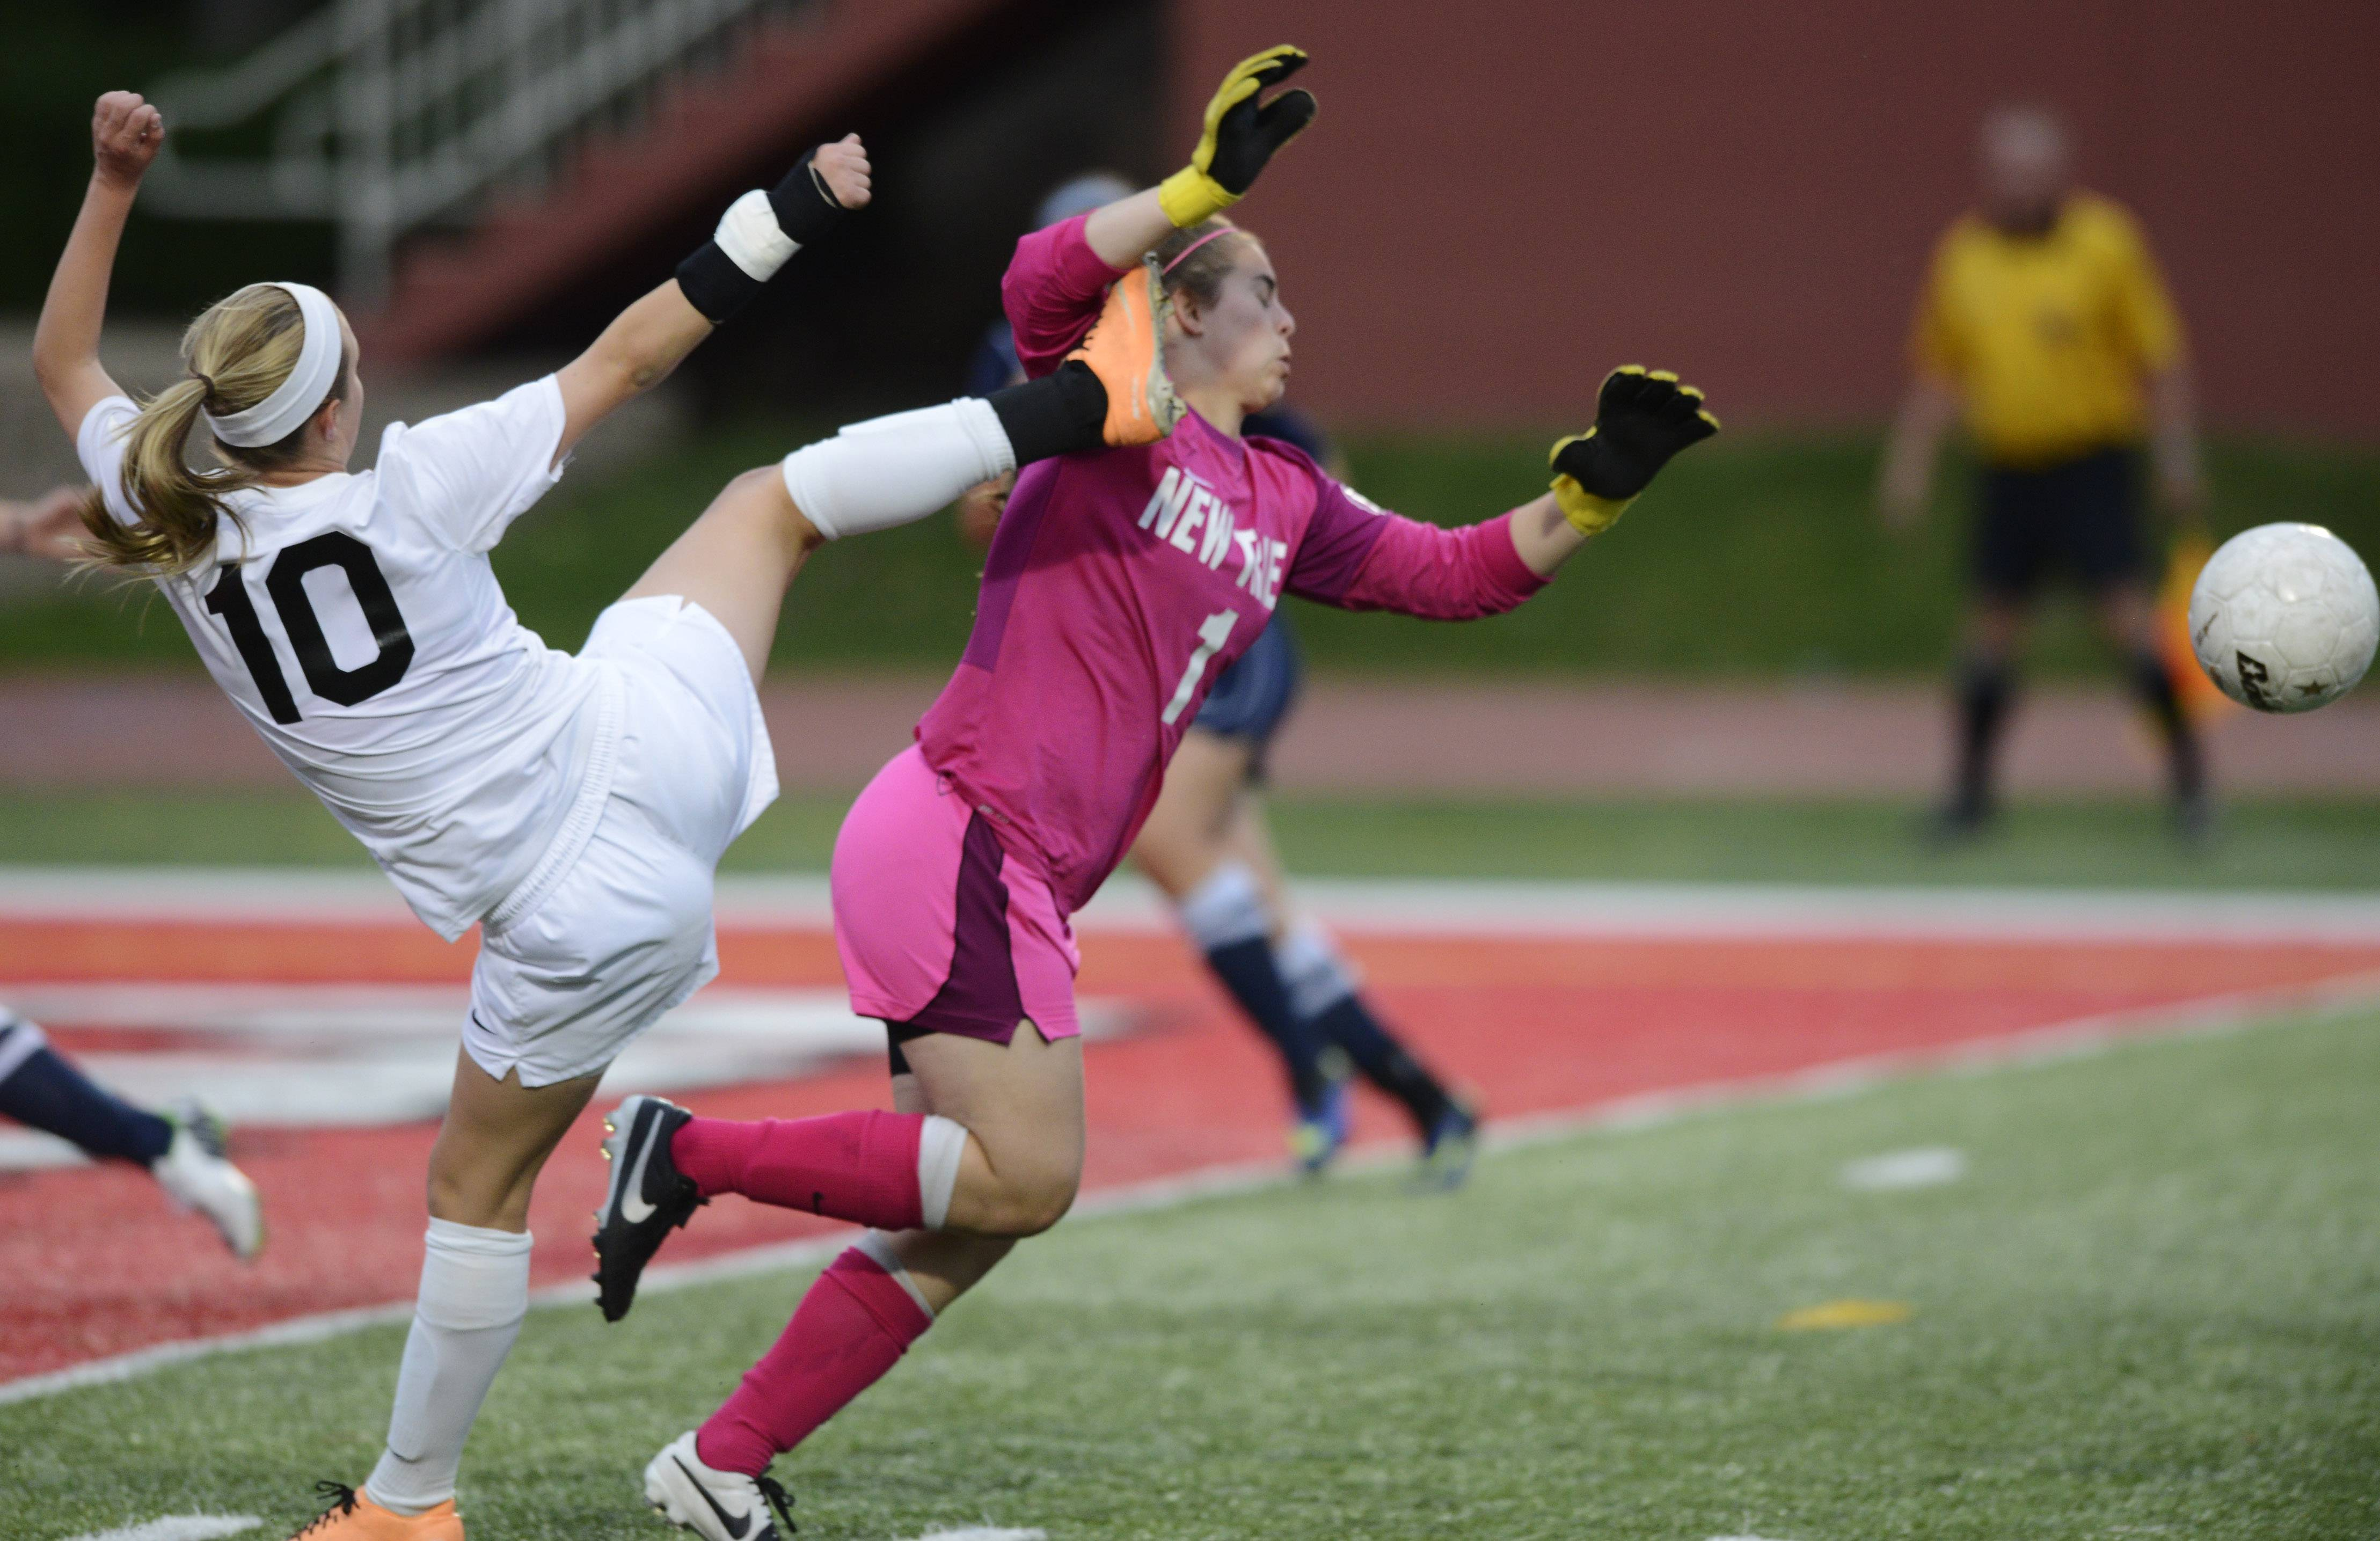 Claire Rasmussen of St. Charles East makes accidental contact with New Trier goal keeper Dani Kaufman on a play in front of the goal during the girls soccer Class 3A state final at North Central College in Naperville Saturday.